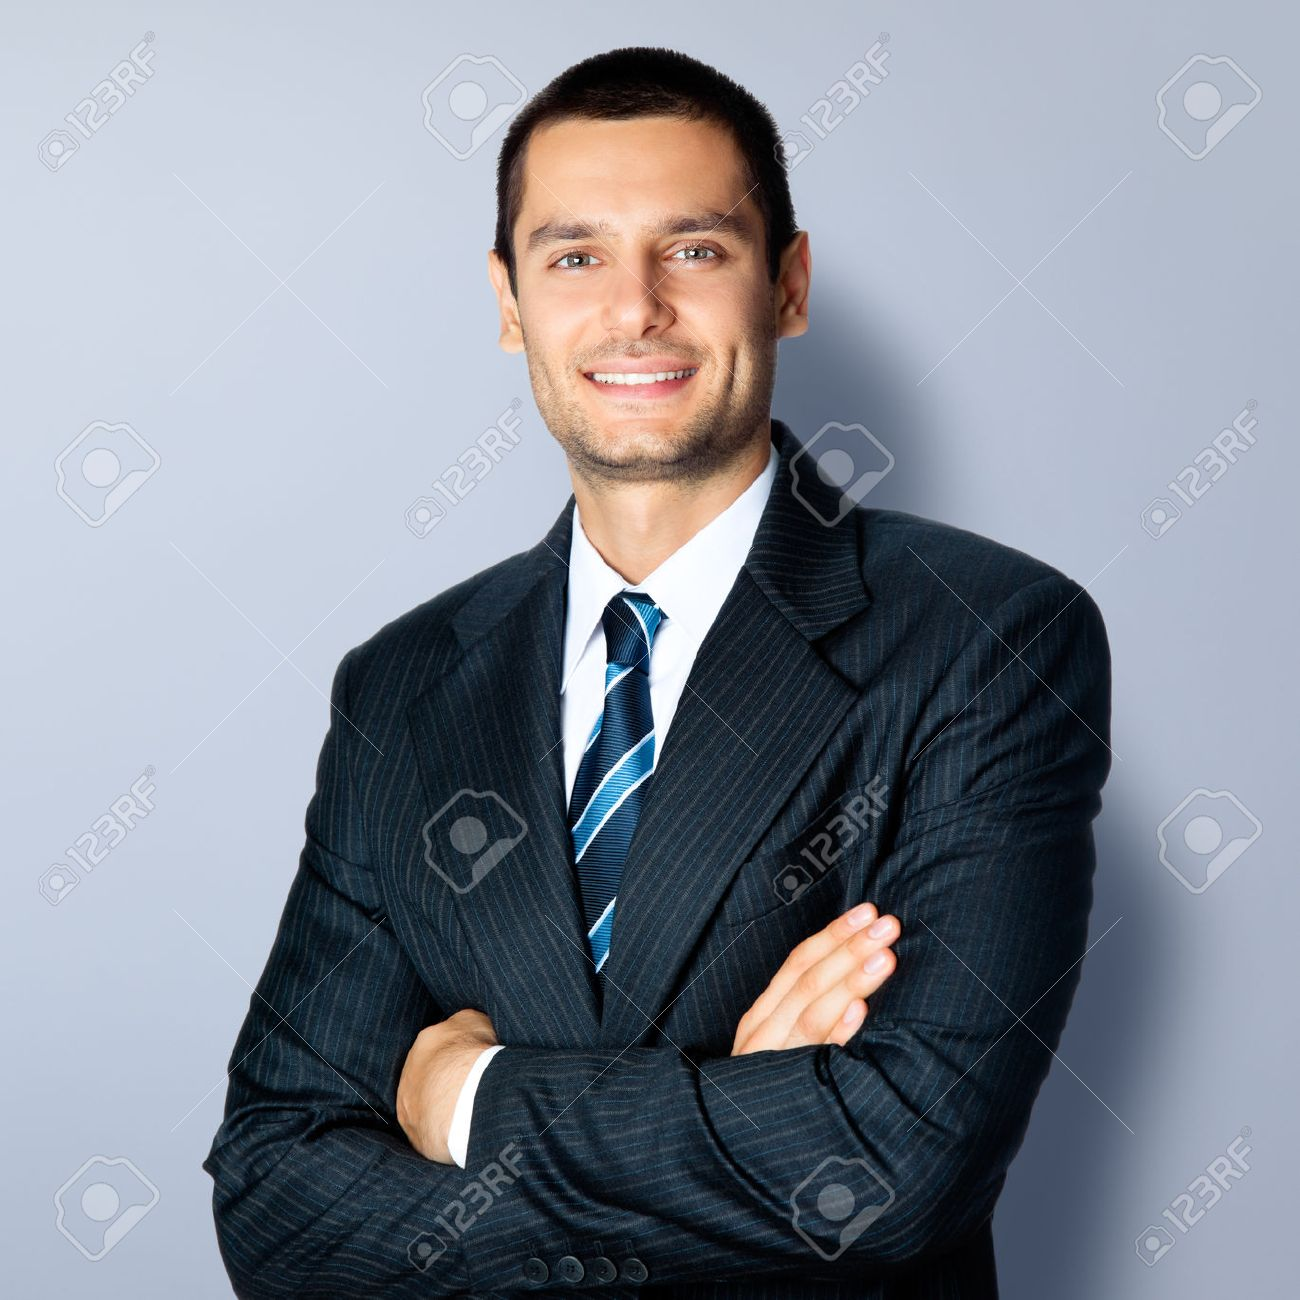 portrait of happy smiling businessman in crossed arms pose in